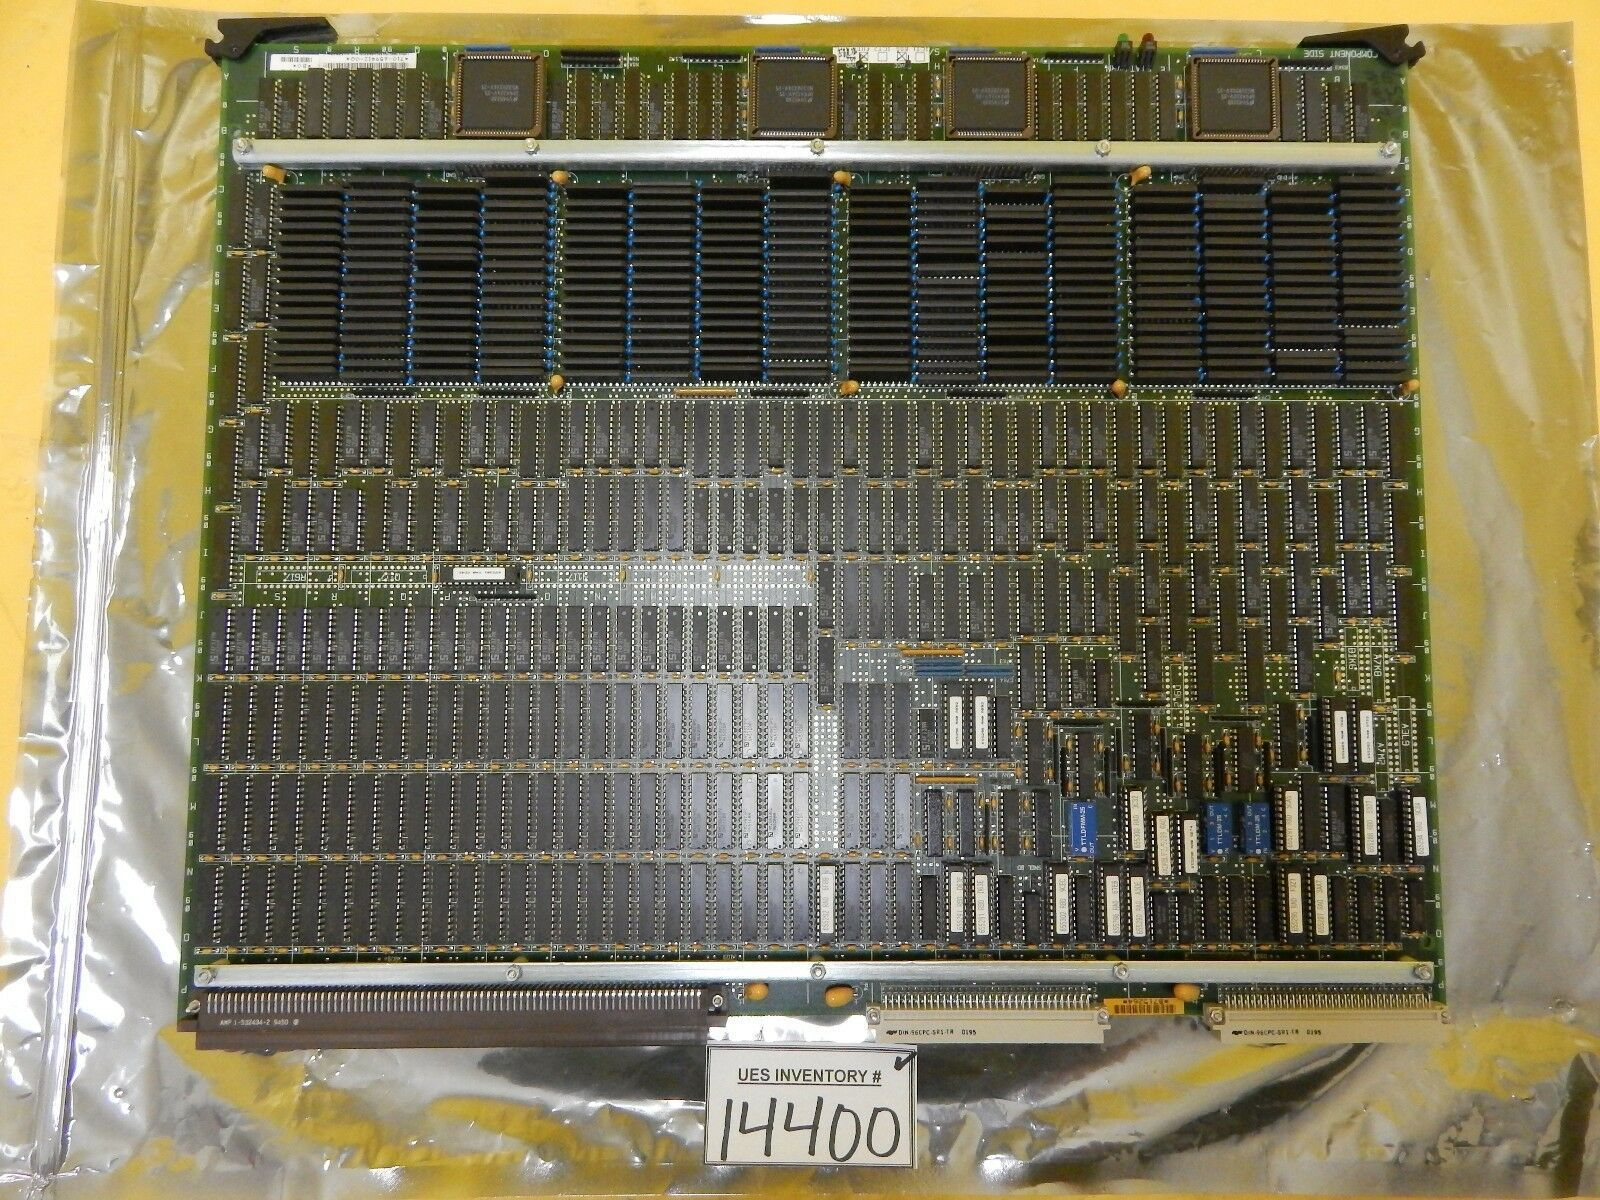 KLA Instruments 710-659412-00 Rev. B0 Mass Memory PCB 700-659412-00 2132 Used